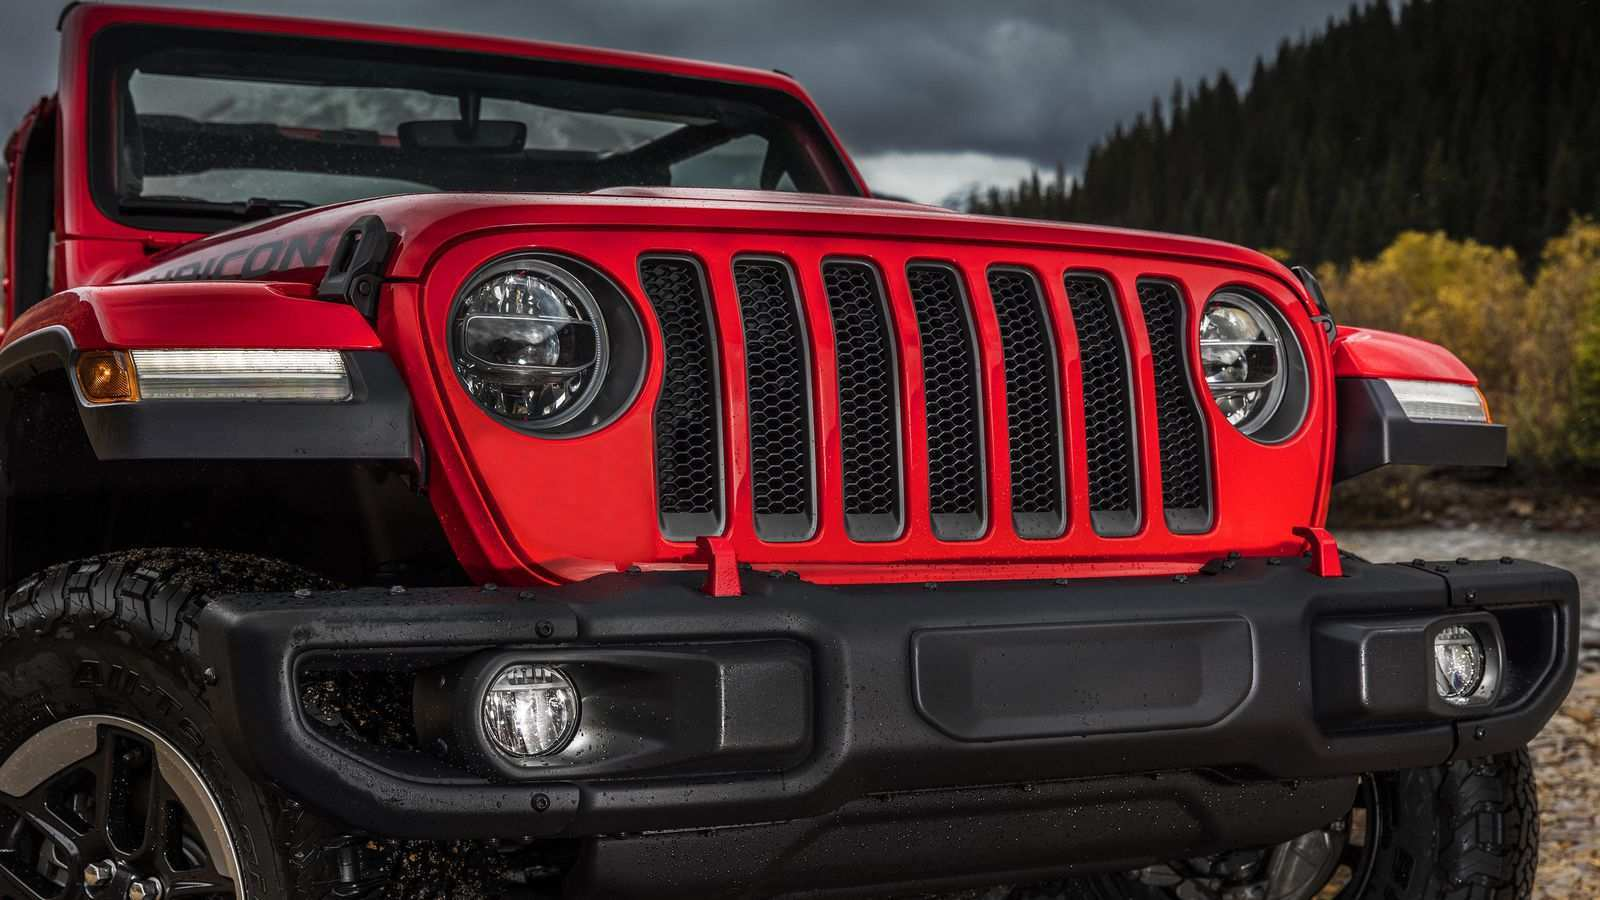 85 A 2020 Jeep Wrangler Unlimited Review And Release Date